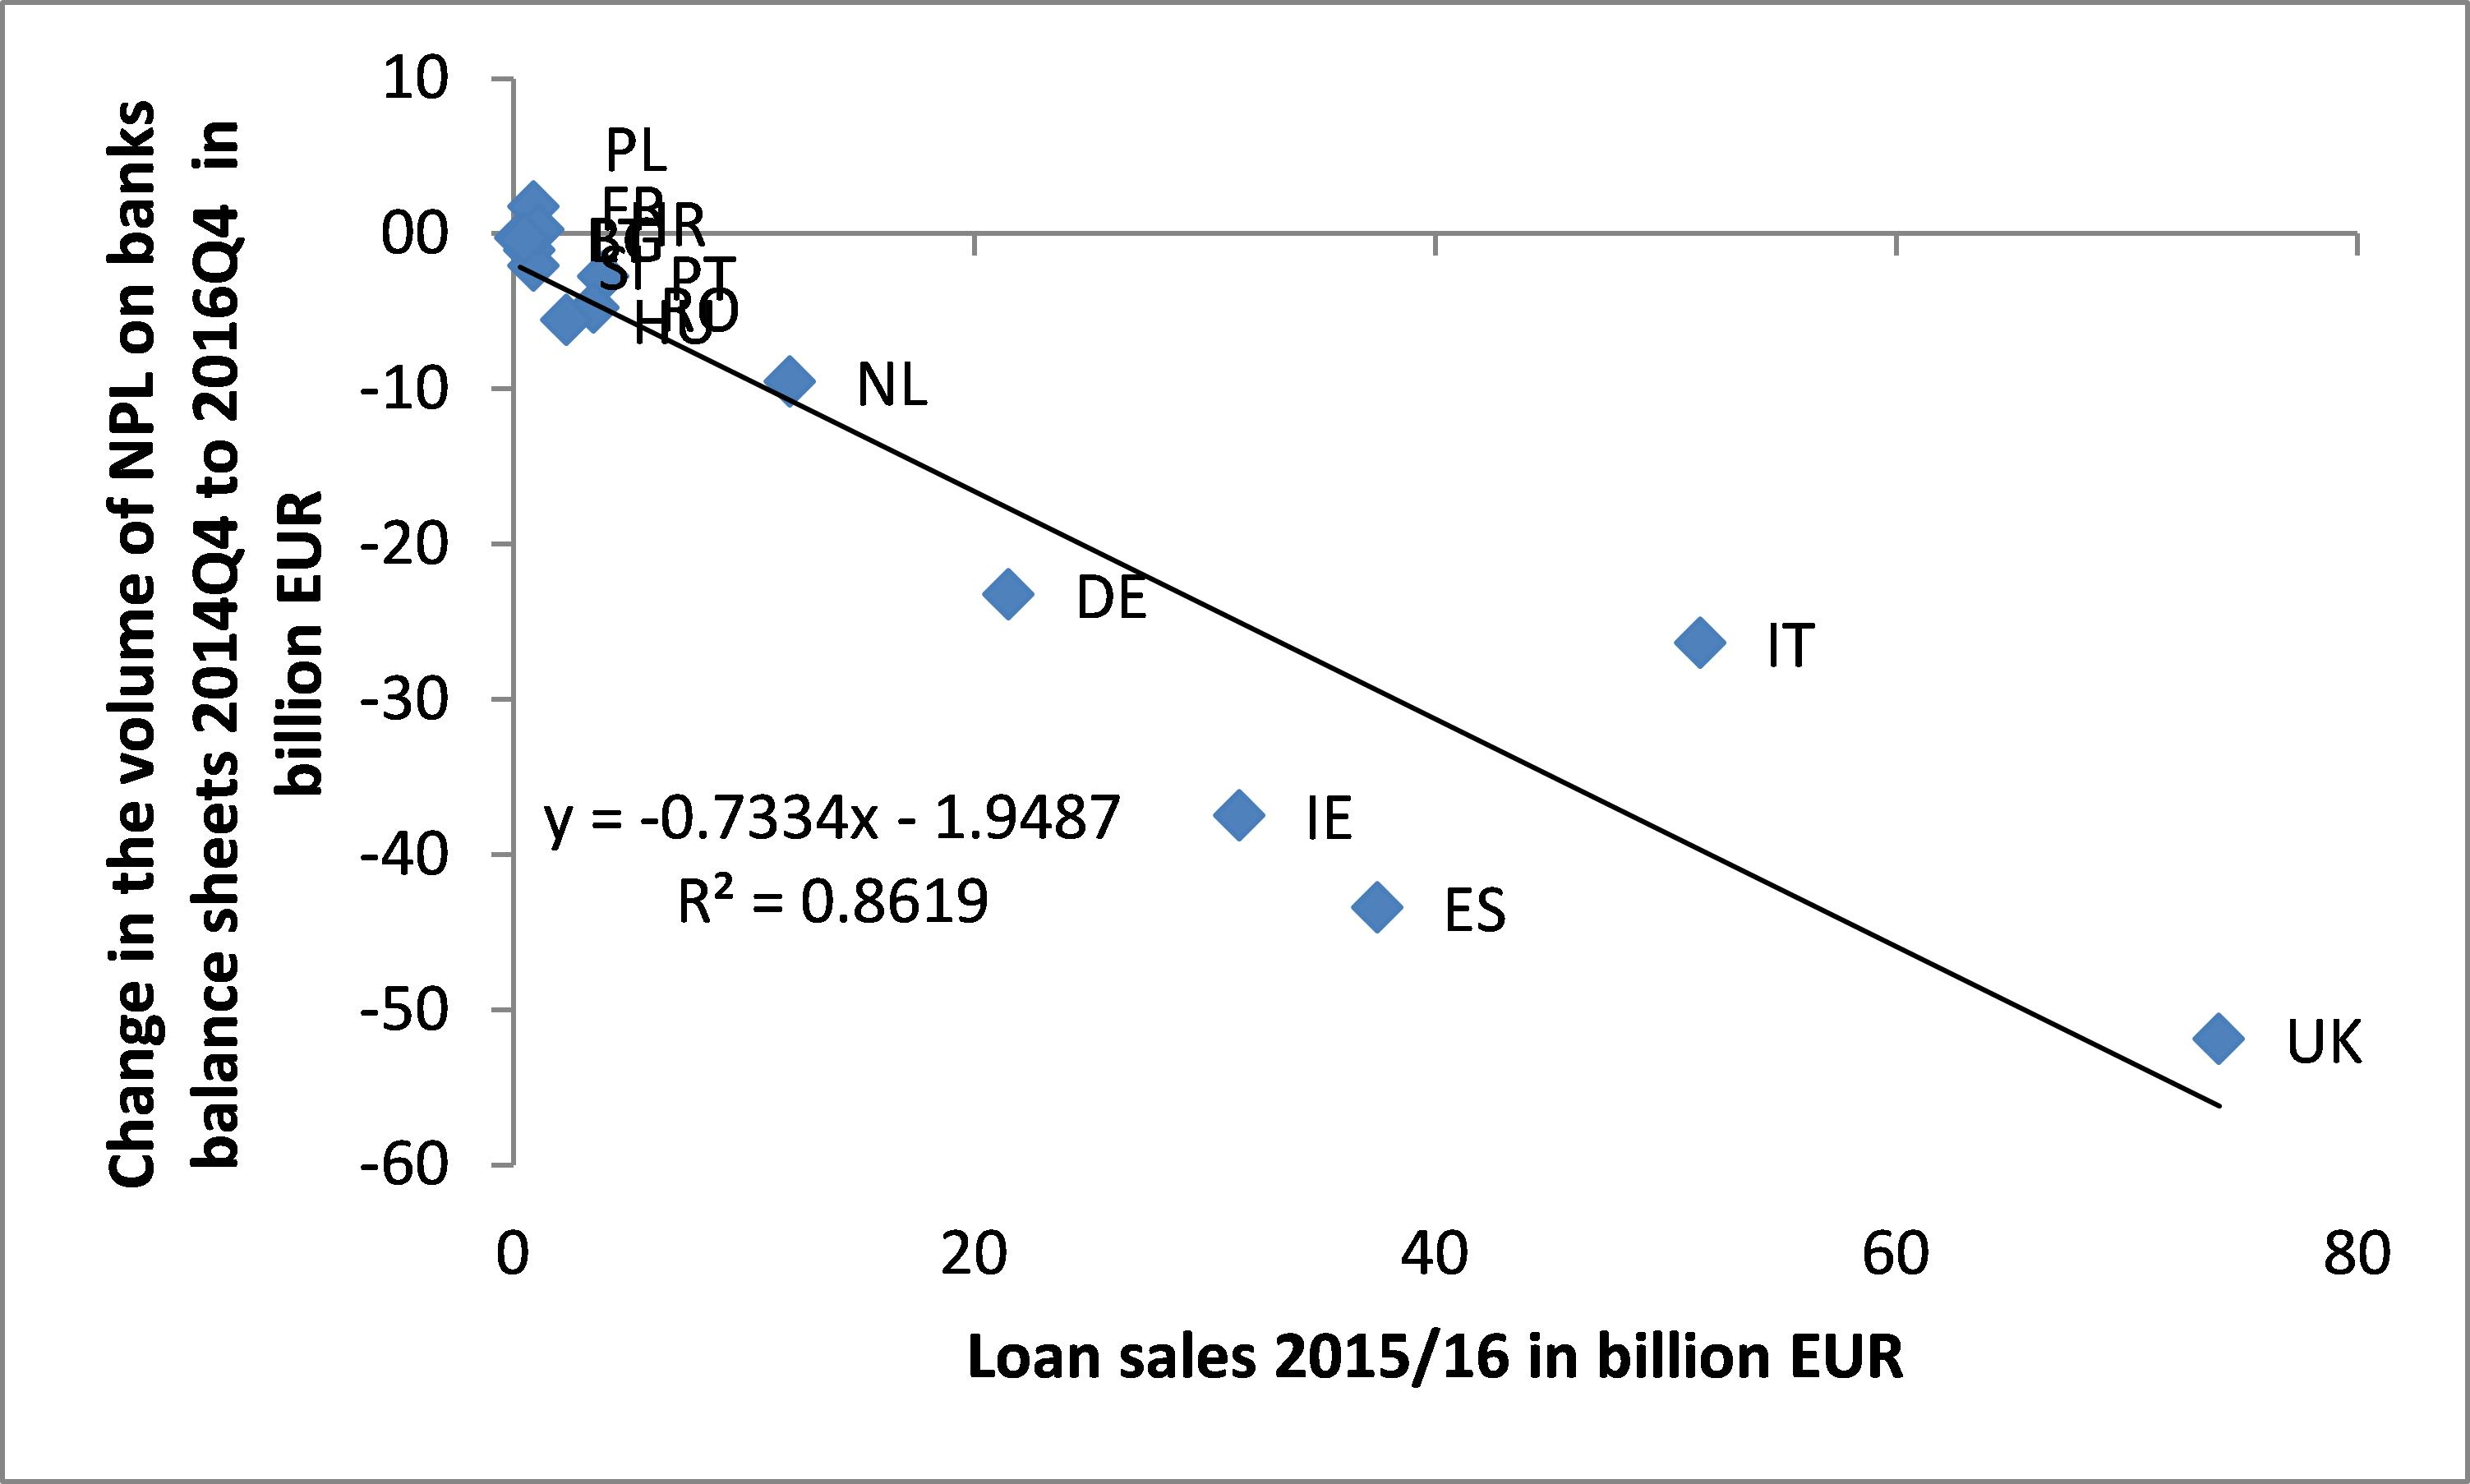 Eur Lex 52018sc0075 En Balance Forces And Moments Draw Free Body Diagrams Good Advice The Chart Below Applies Same Methodology But Does Not Take Loan Sale Npl Volumes In As A Ratio To Stock Of Npls Total Loans